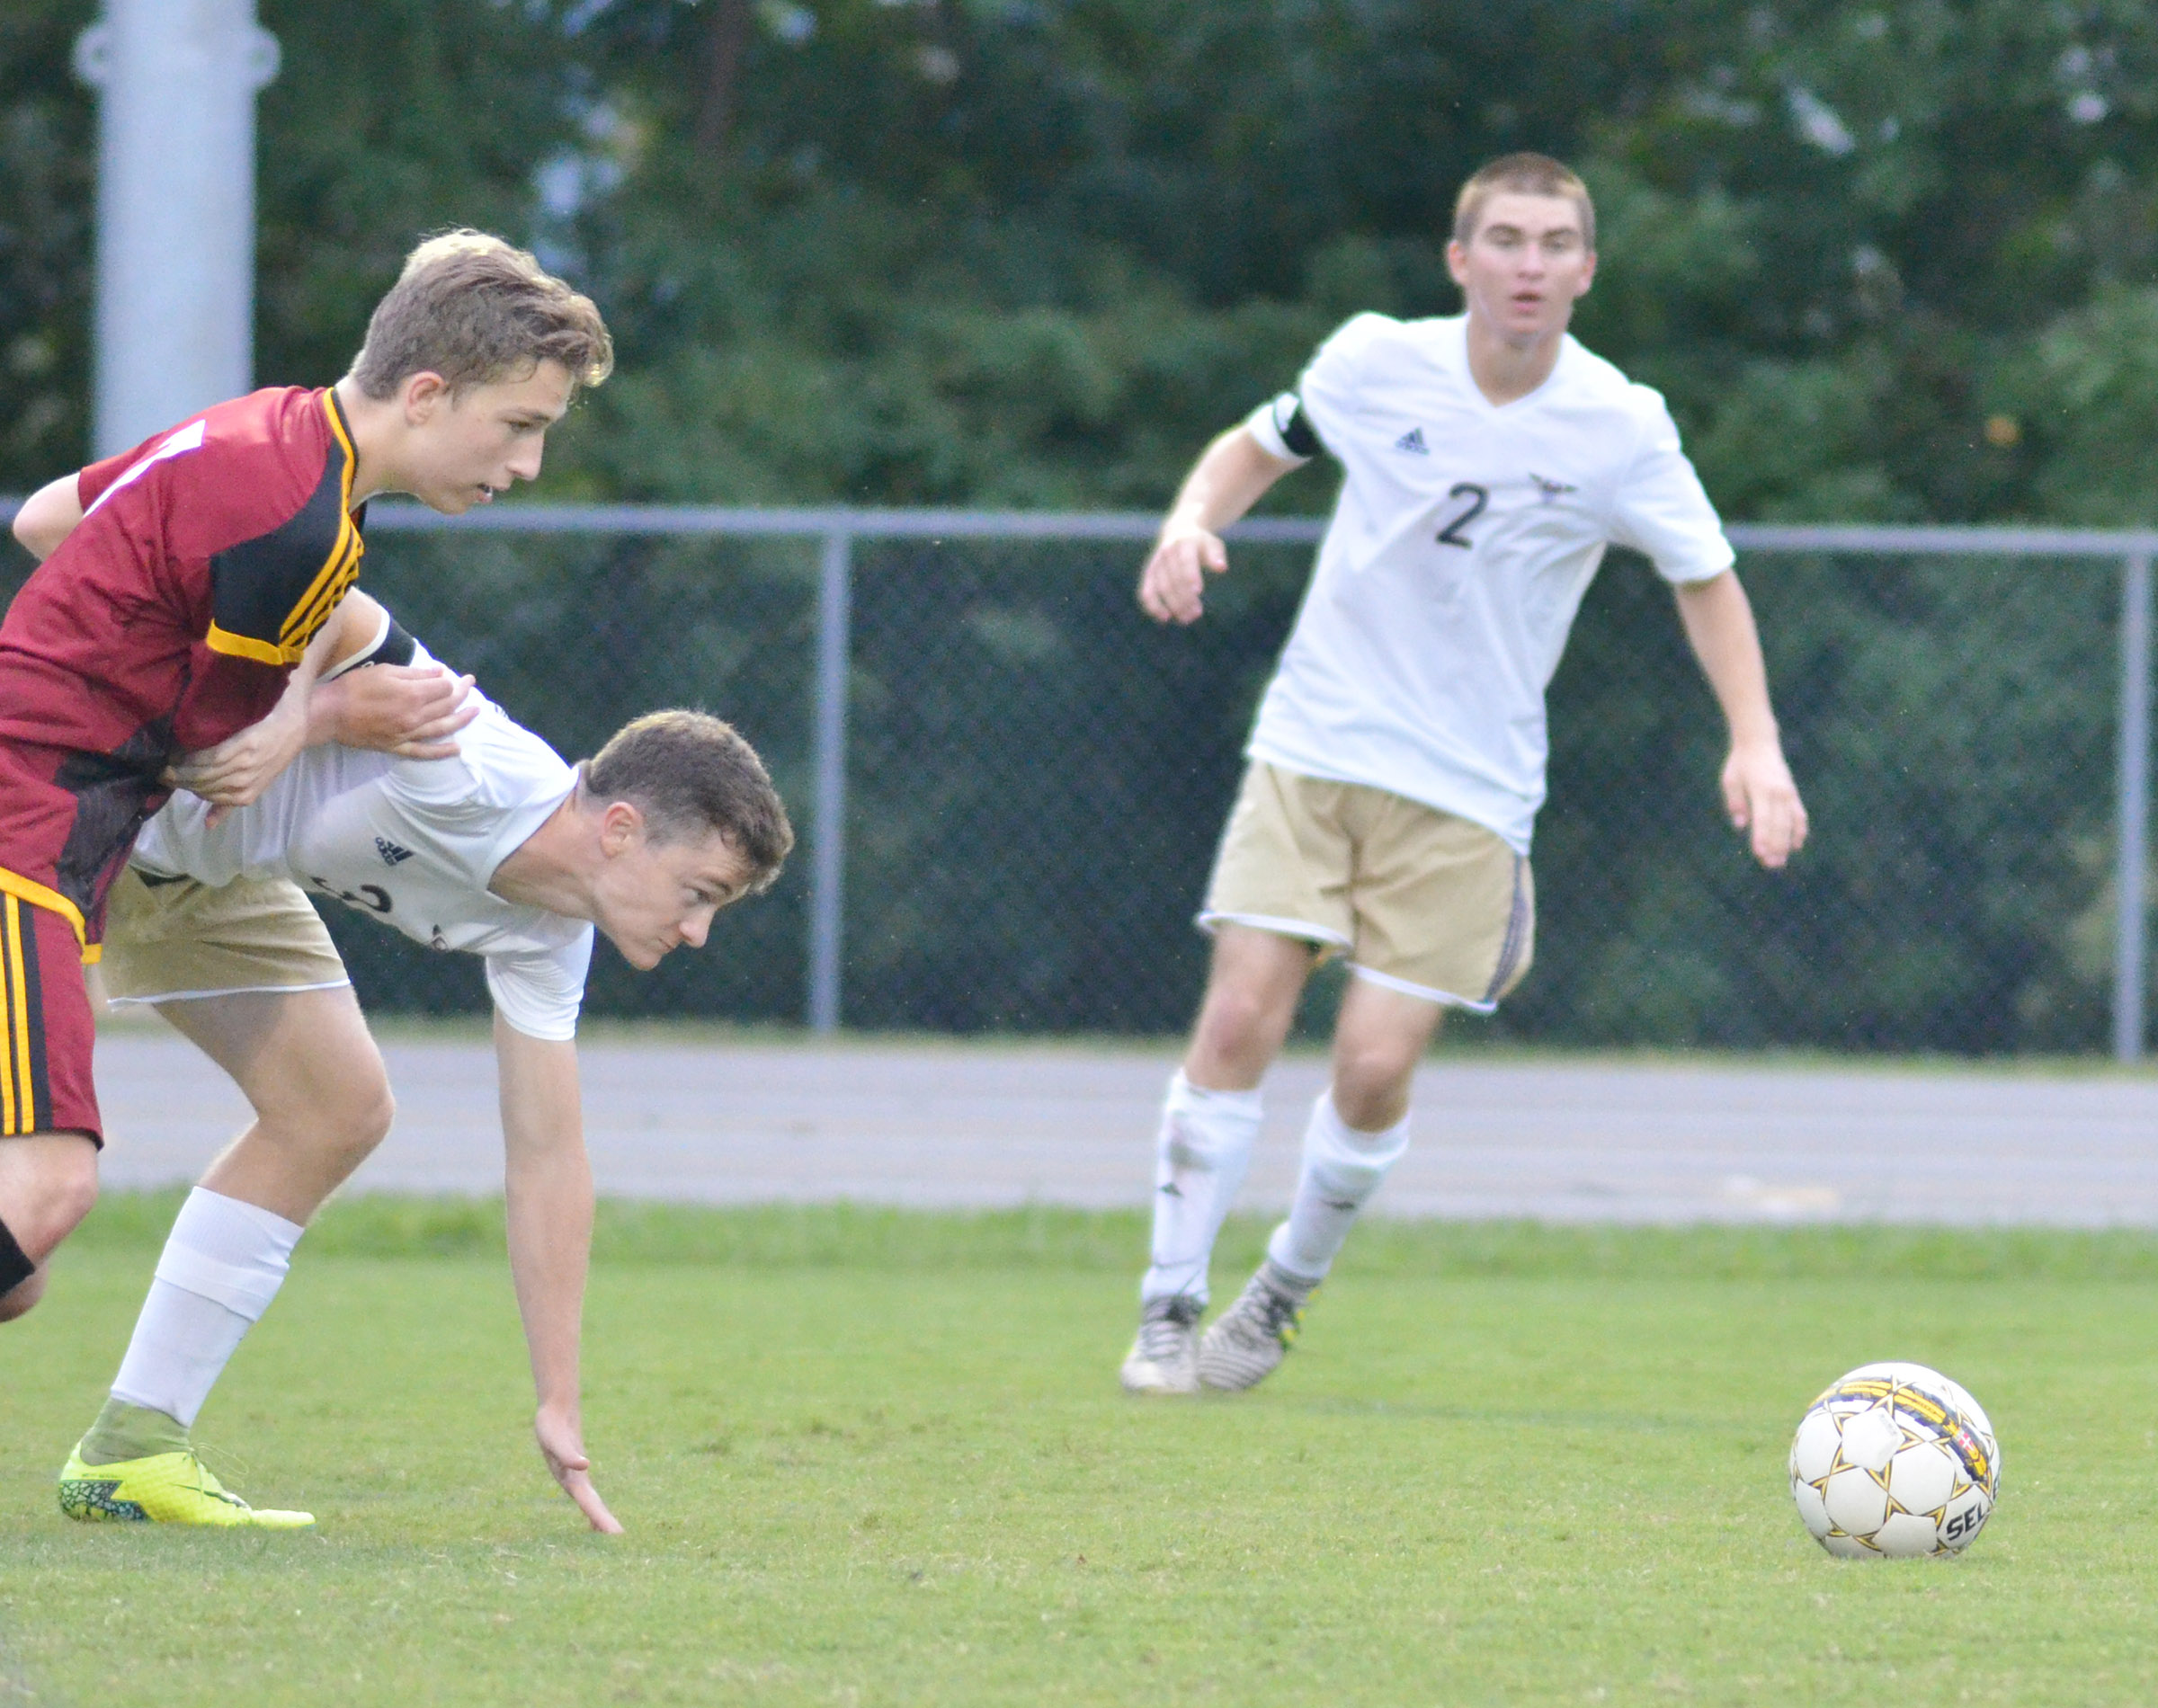 CHS senior Bryce Richardson battles for the ball, as classmate Cass Kidwell stays close.